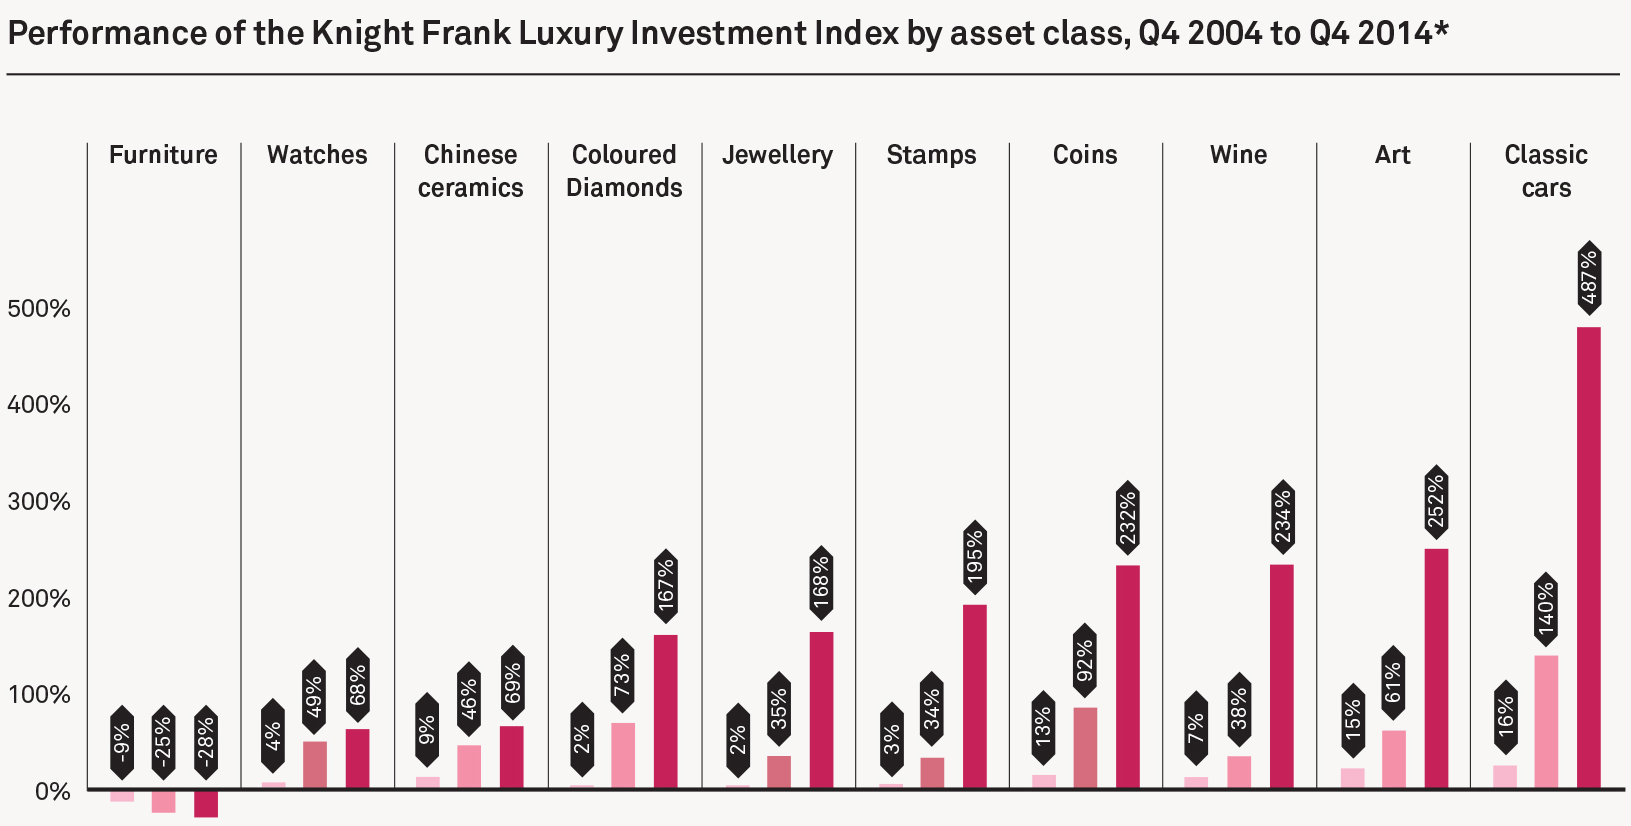 http://fm.cnbc.com/applications/cnbc.com/resources/files/2015/03/04/knight-frank-luxury-investment-index-2.jpg